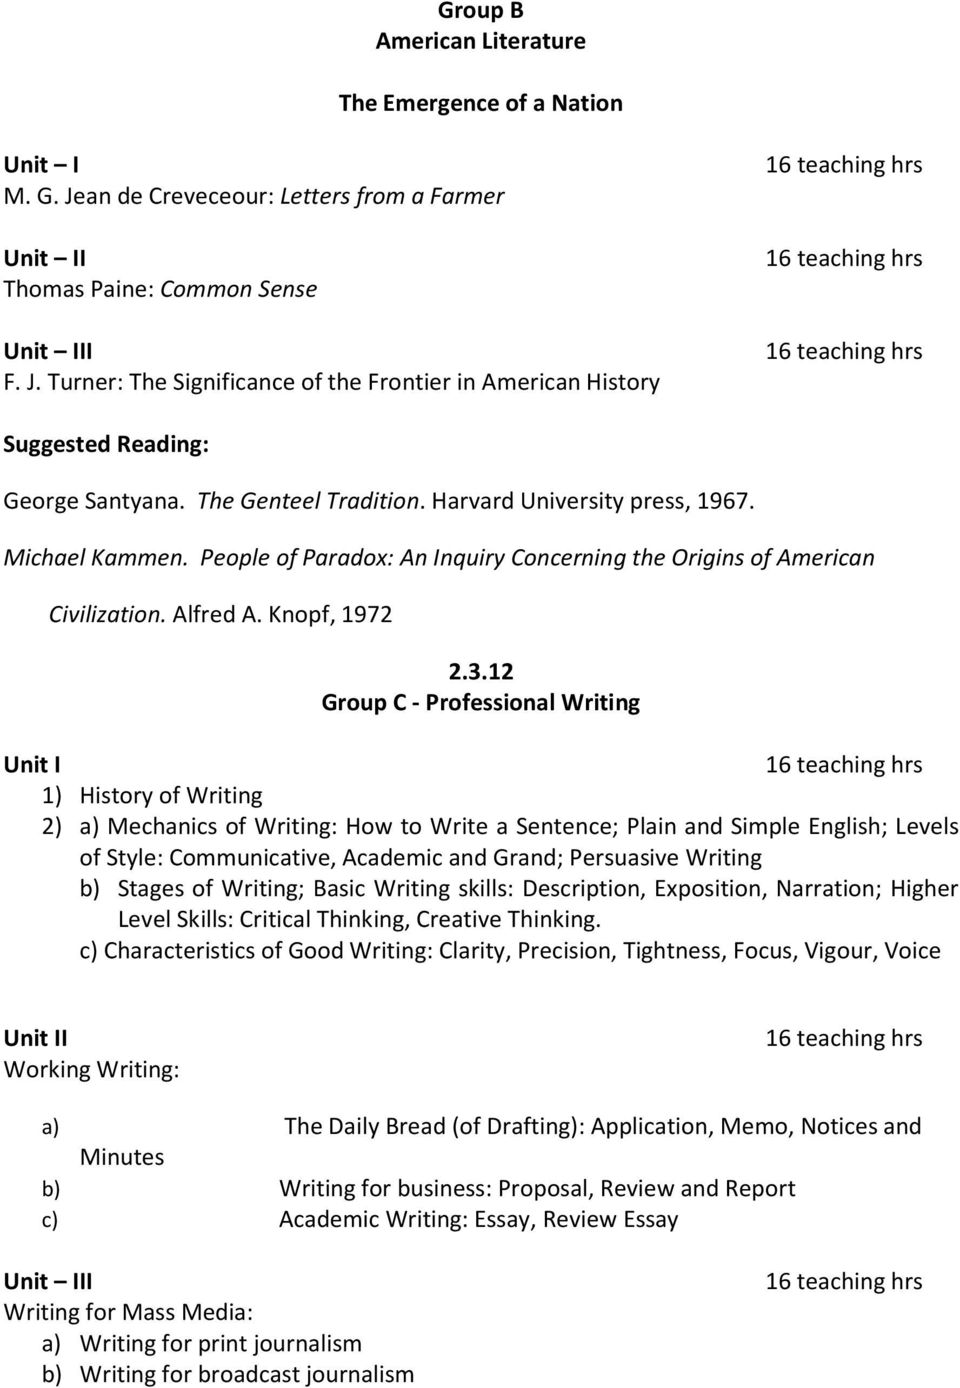 Steps in writing a research paper pdf